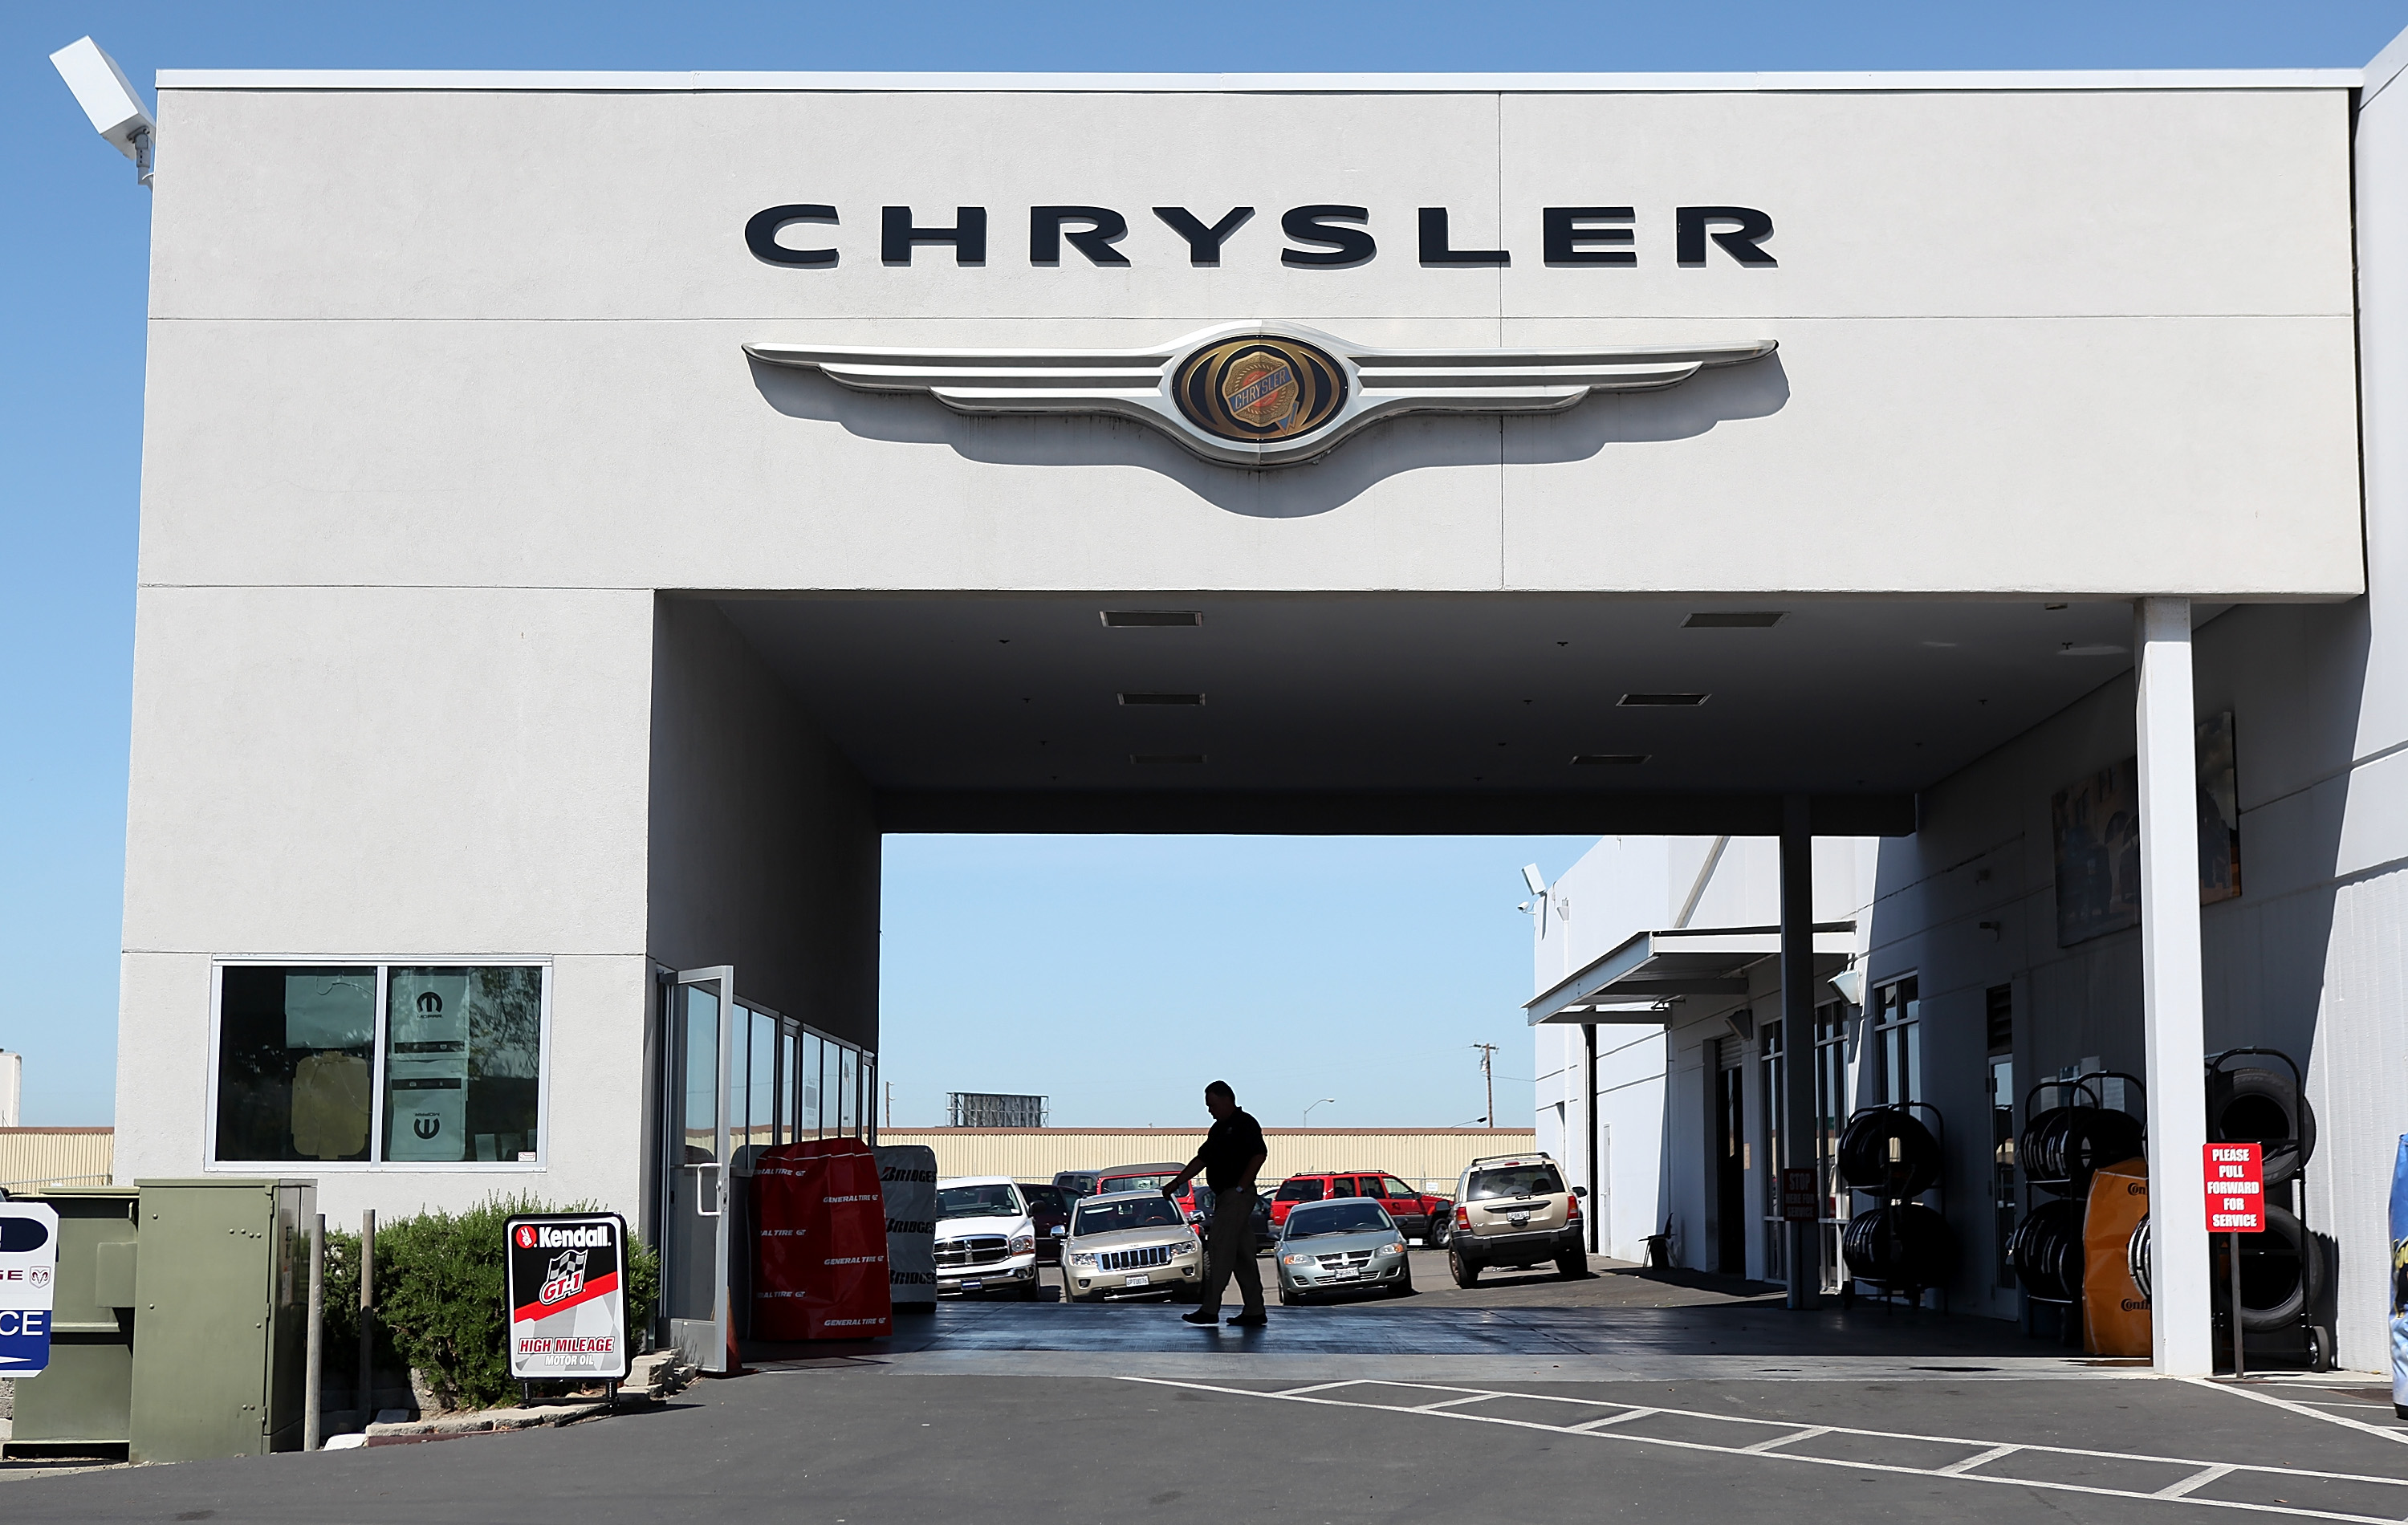 A Chrysler dealership on May 2, 2011 in Vallejo, California